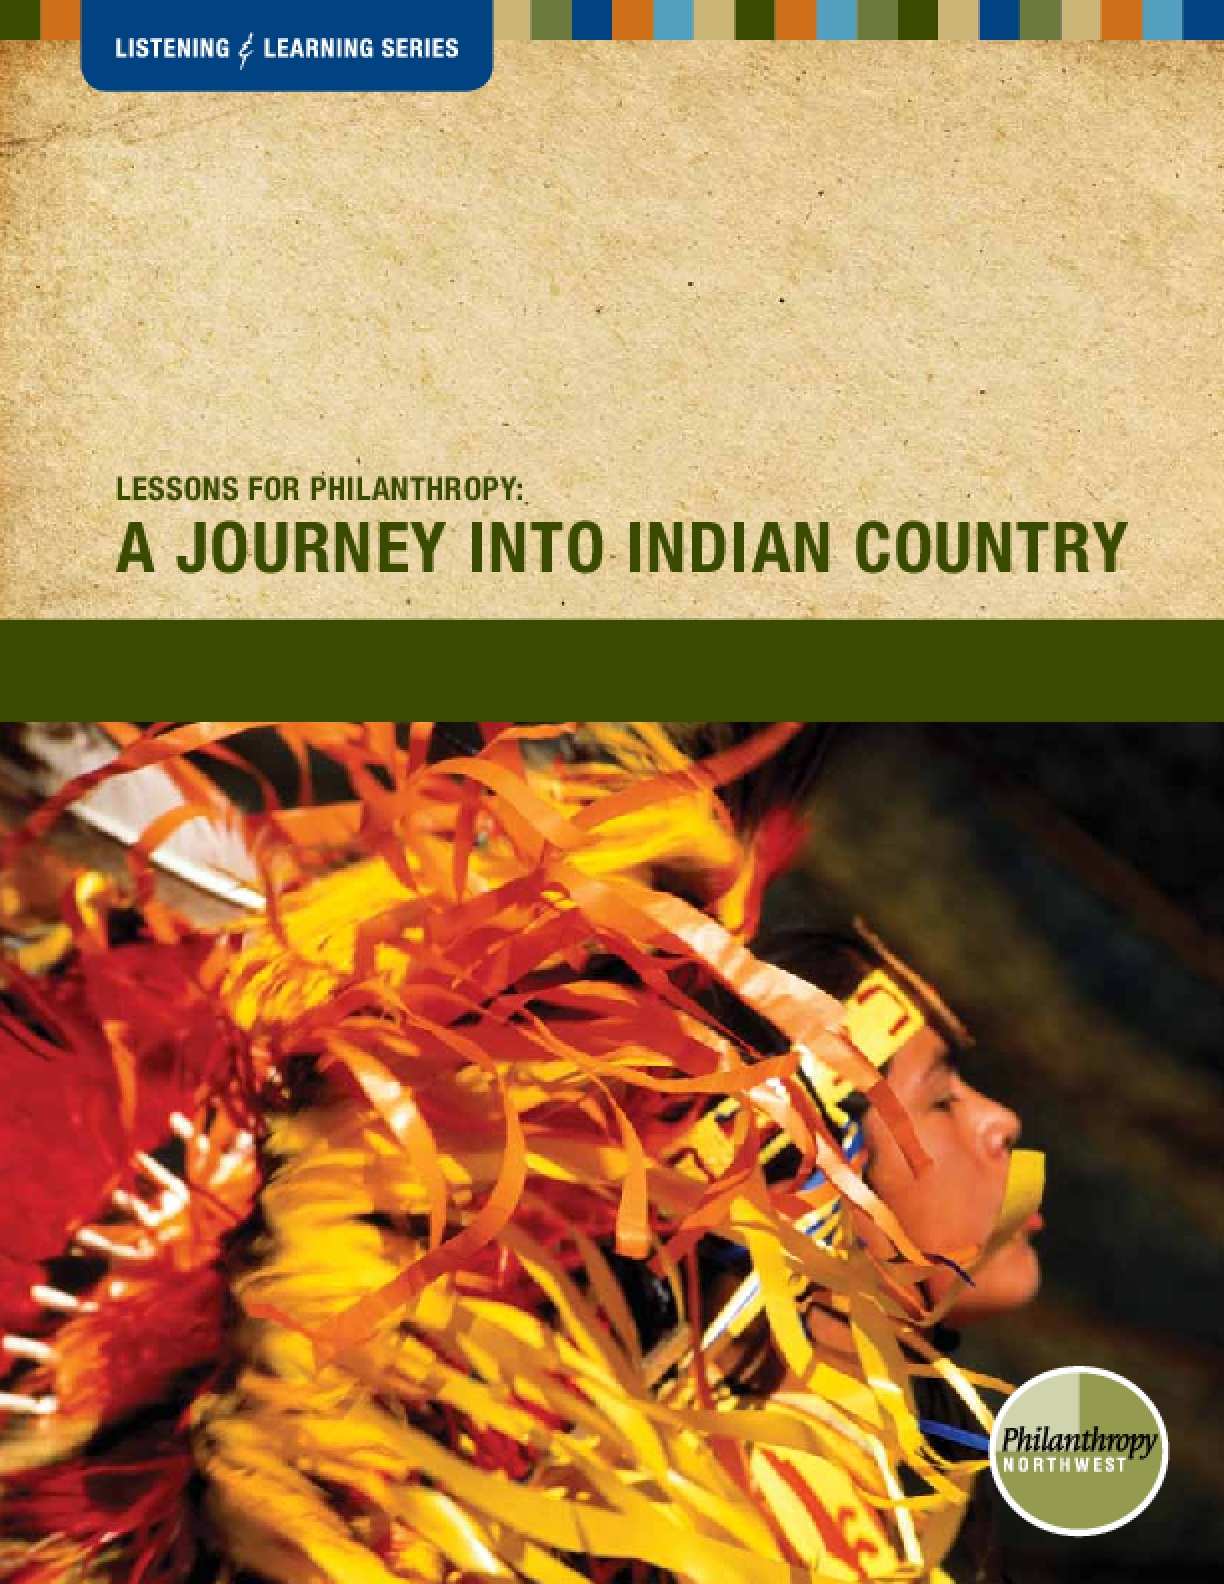 Lessons for Philanthropy: a Journey into Indian Country